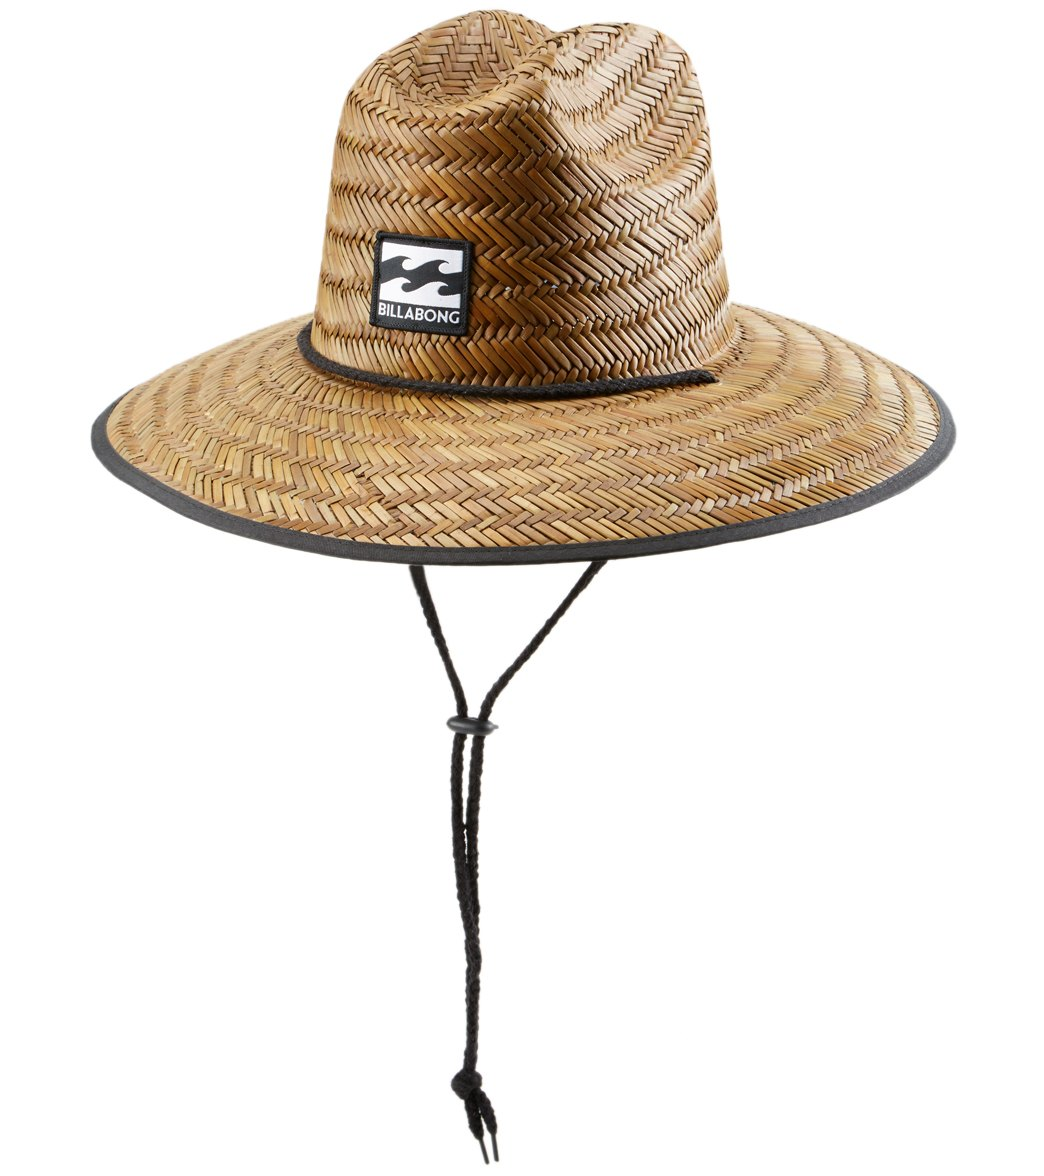 f7d5a3db Billabong Men's Tides Print Straw Hat at SwimOutlet.com